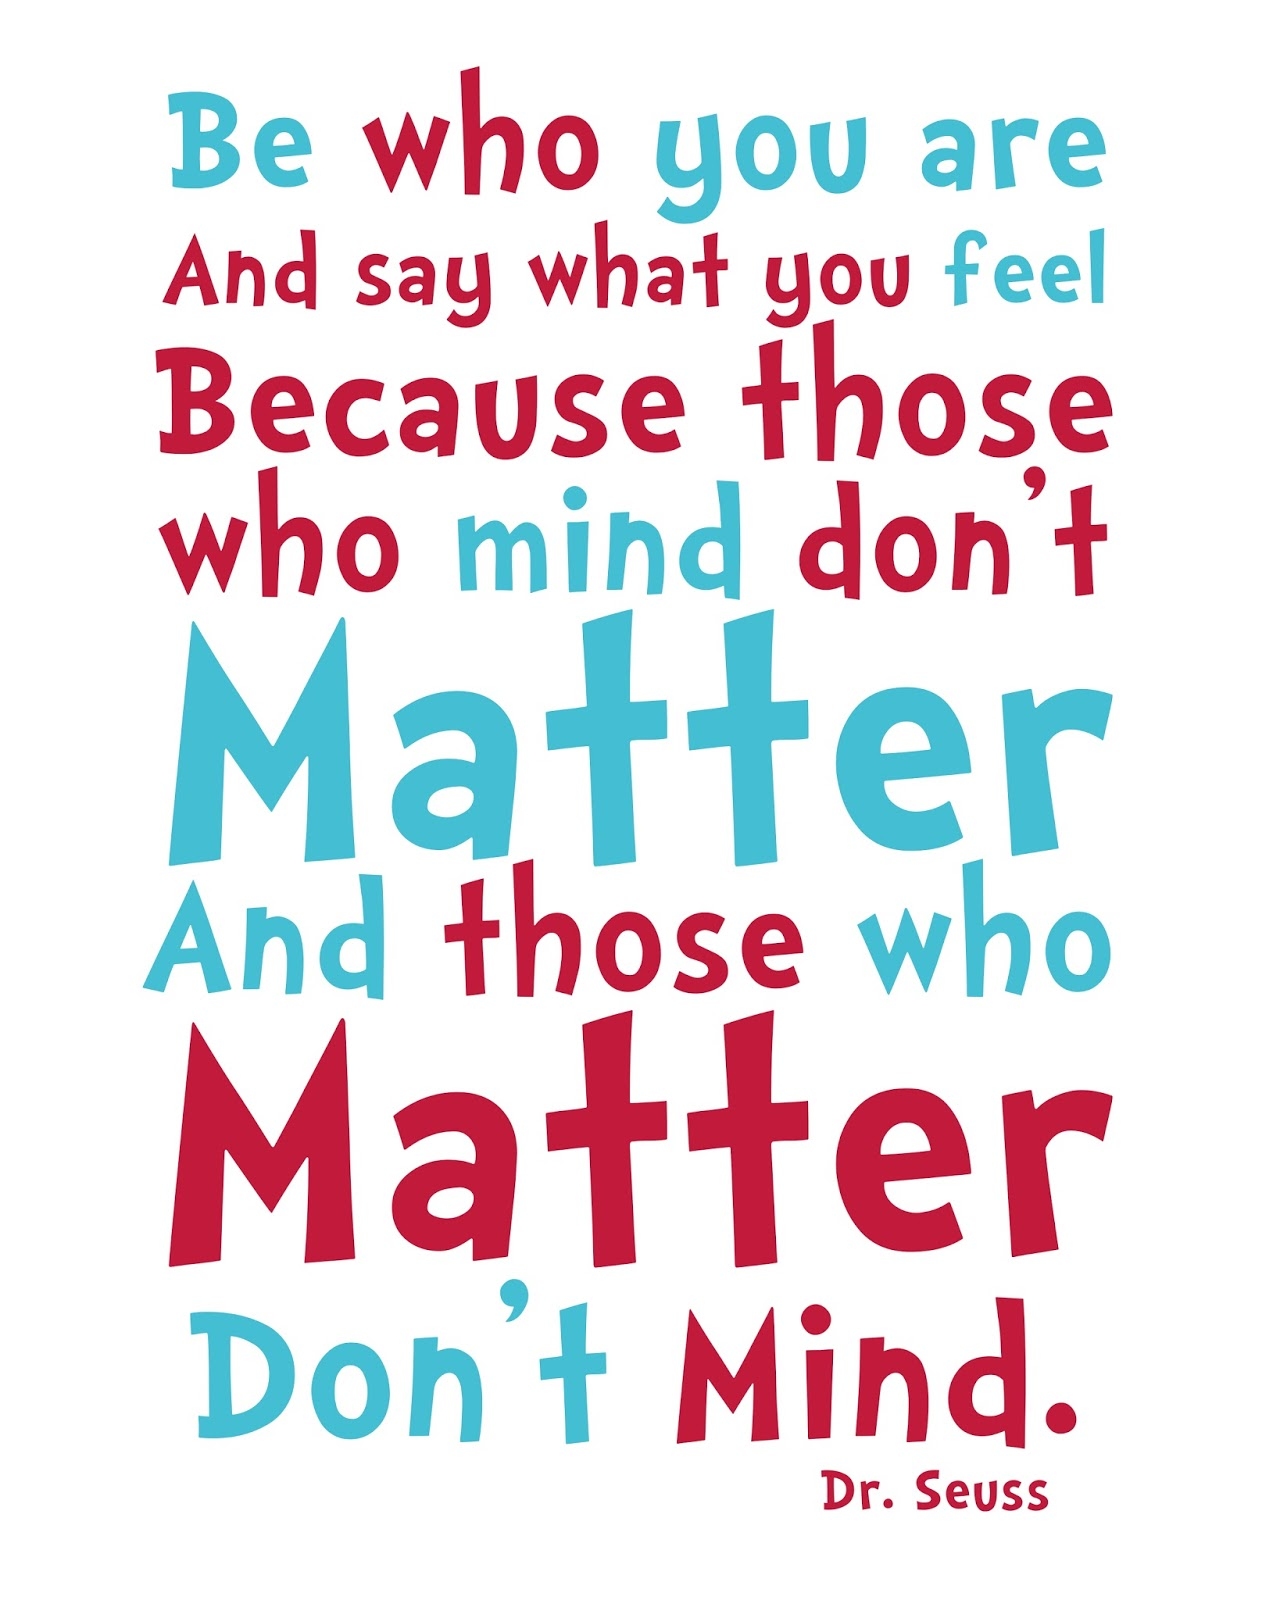 Dr. Seuss Quotes 2